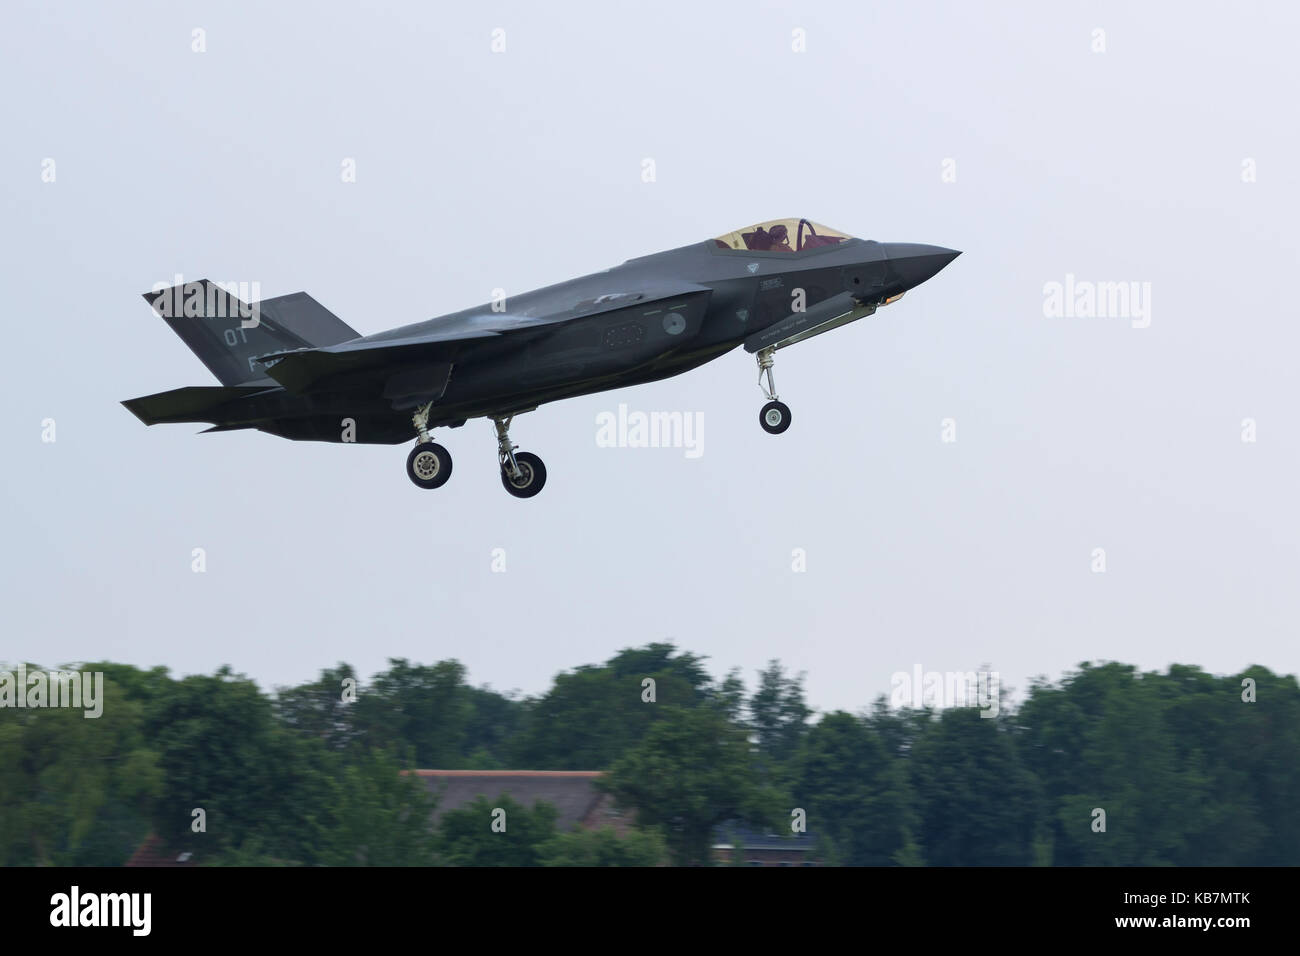 F-35 Lighting II of the RNLAF landing after an exercise during the very first deployment of F-35 aircraft in Europe. - Stock Image